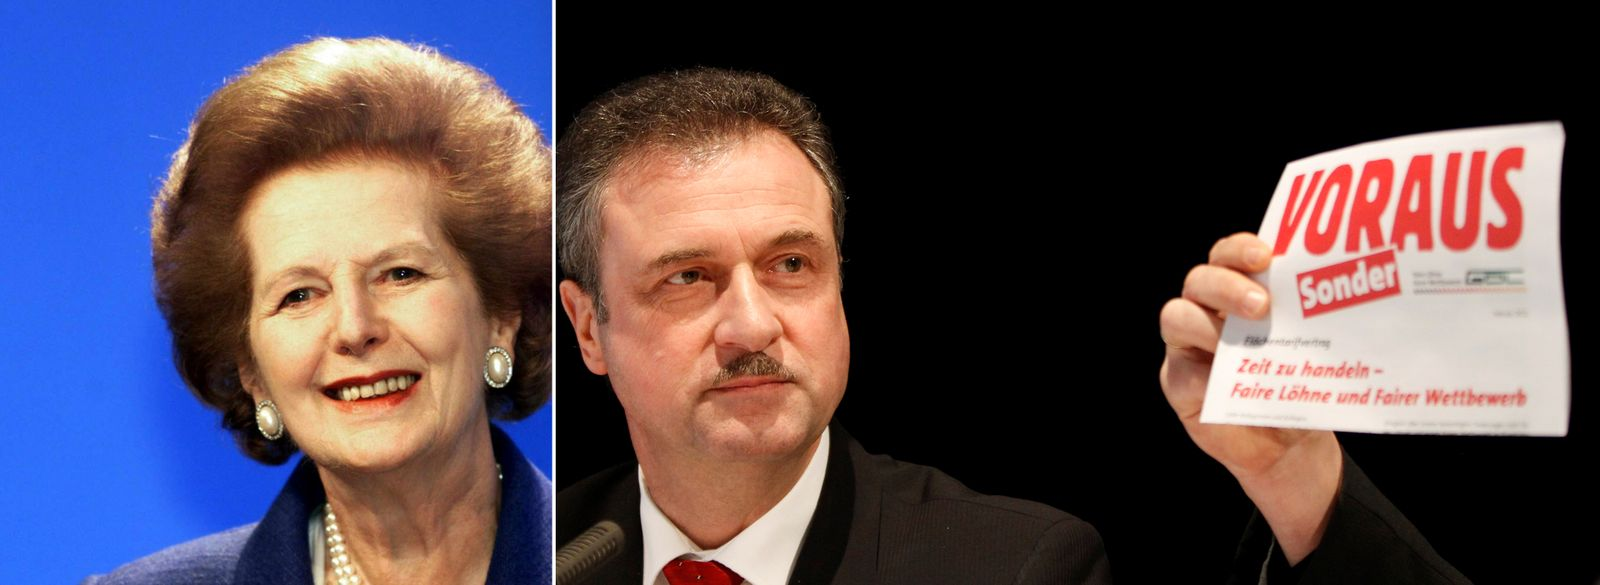 KOMBO Margaret Thatcher / Claus Weselsky